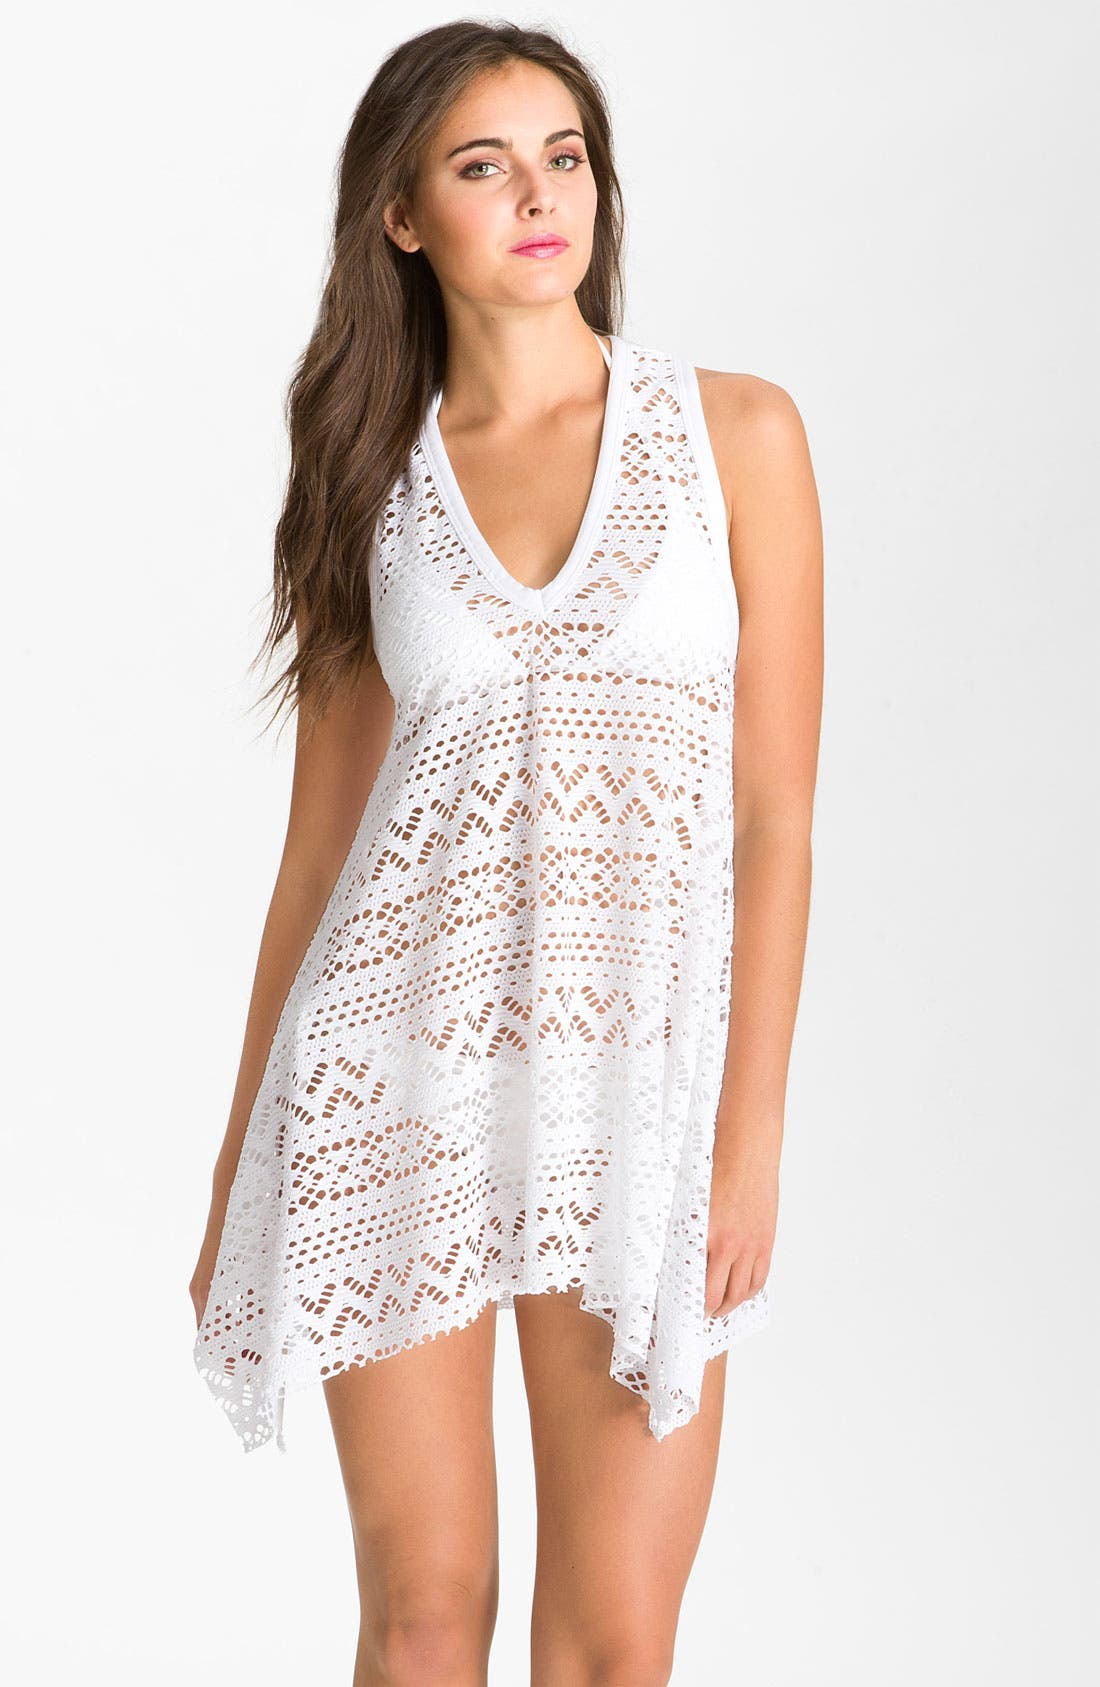 Main Image - Robin Piccone 'Penelope' Crochet Kerchief Cover-Up Dress